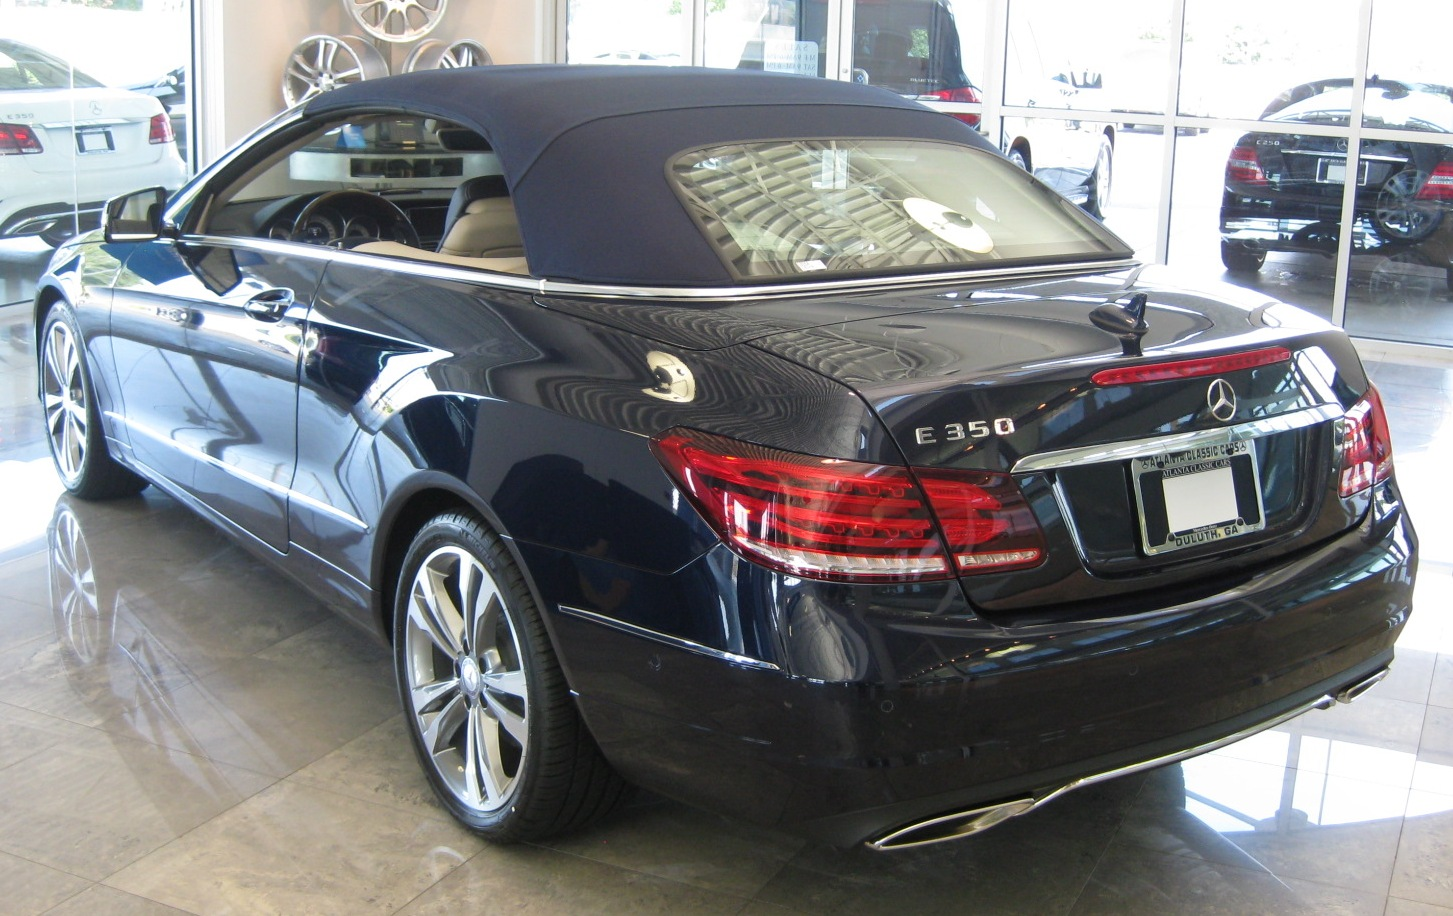 Benzblogger Blog Archiv 2014 Mercedes Benz E Class Cabriolet Soft Top Colors Red Blue And Brown